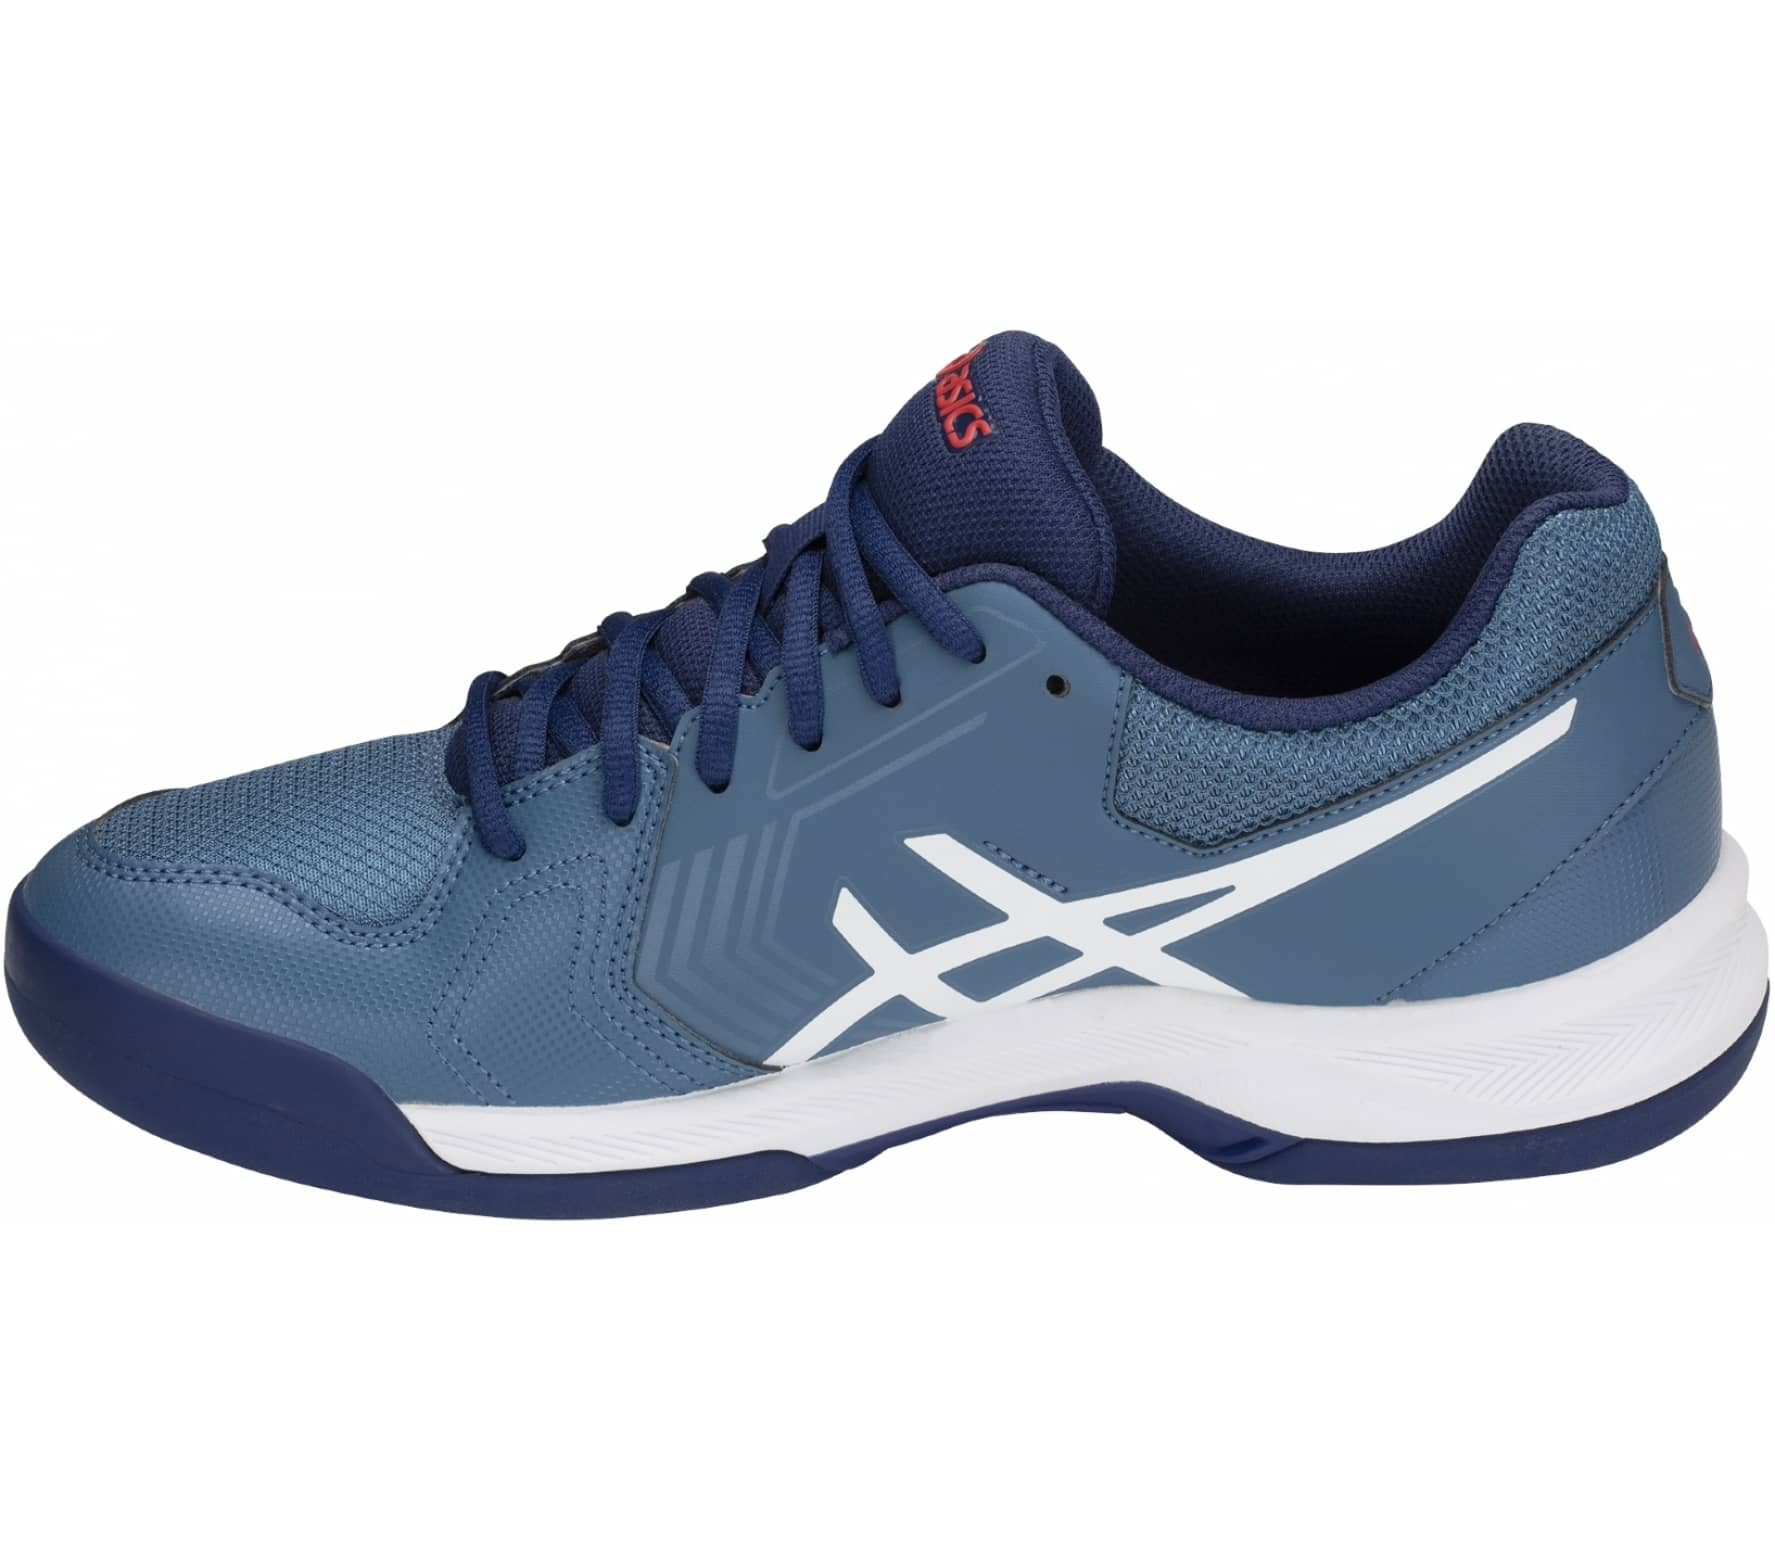 088d700bedfb ASICS - Gel-Dedicate 5 Indoor men s tennis shoes (blue) - buy it at ...